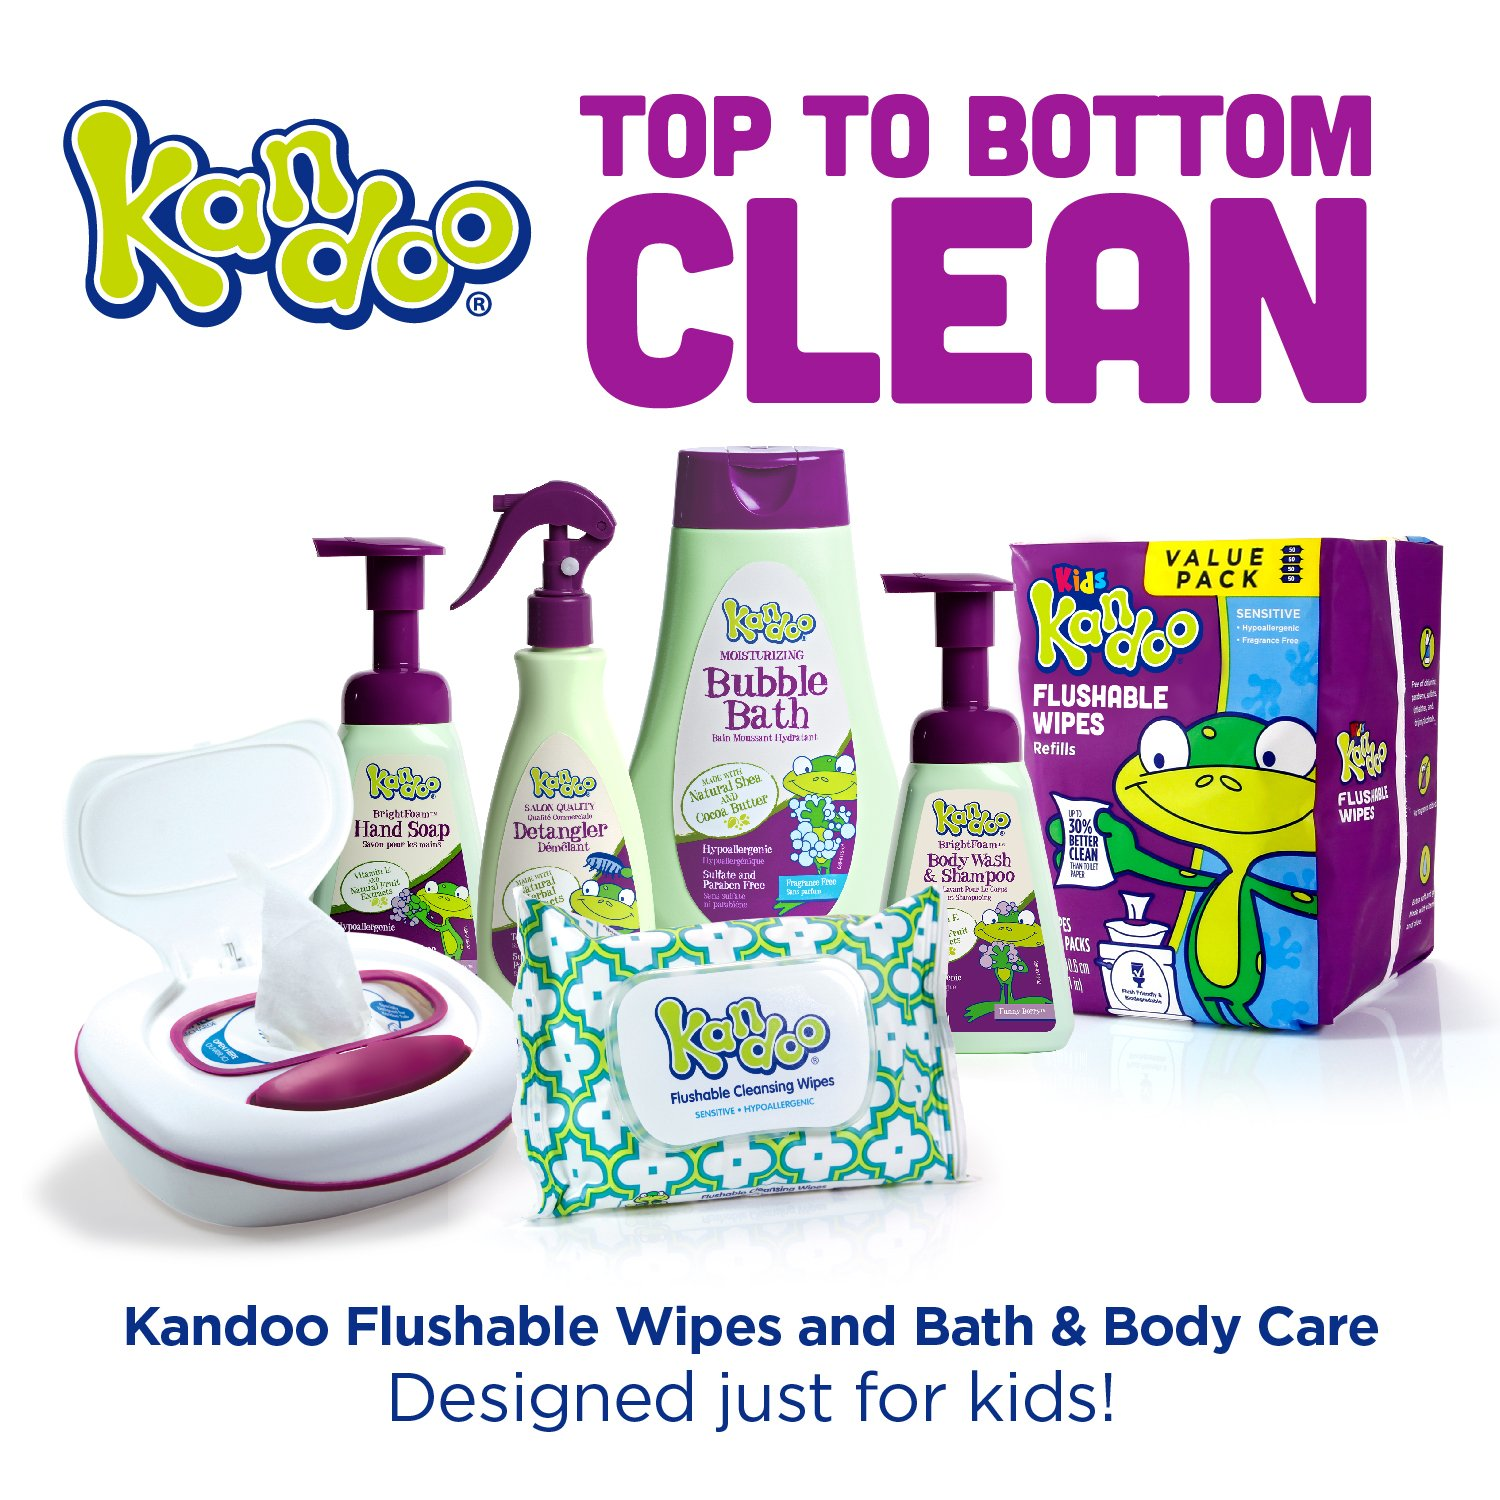 100 Count Potty Training Cleansing Cloths Kandoo Kids Flushable Wipes Refill Magic Melon Pack of 6